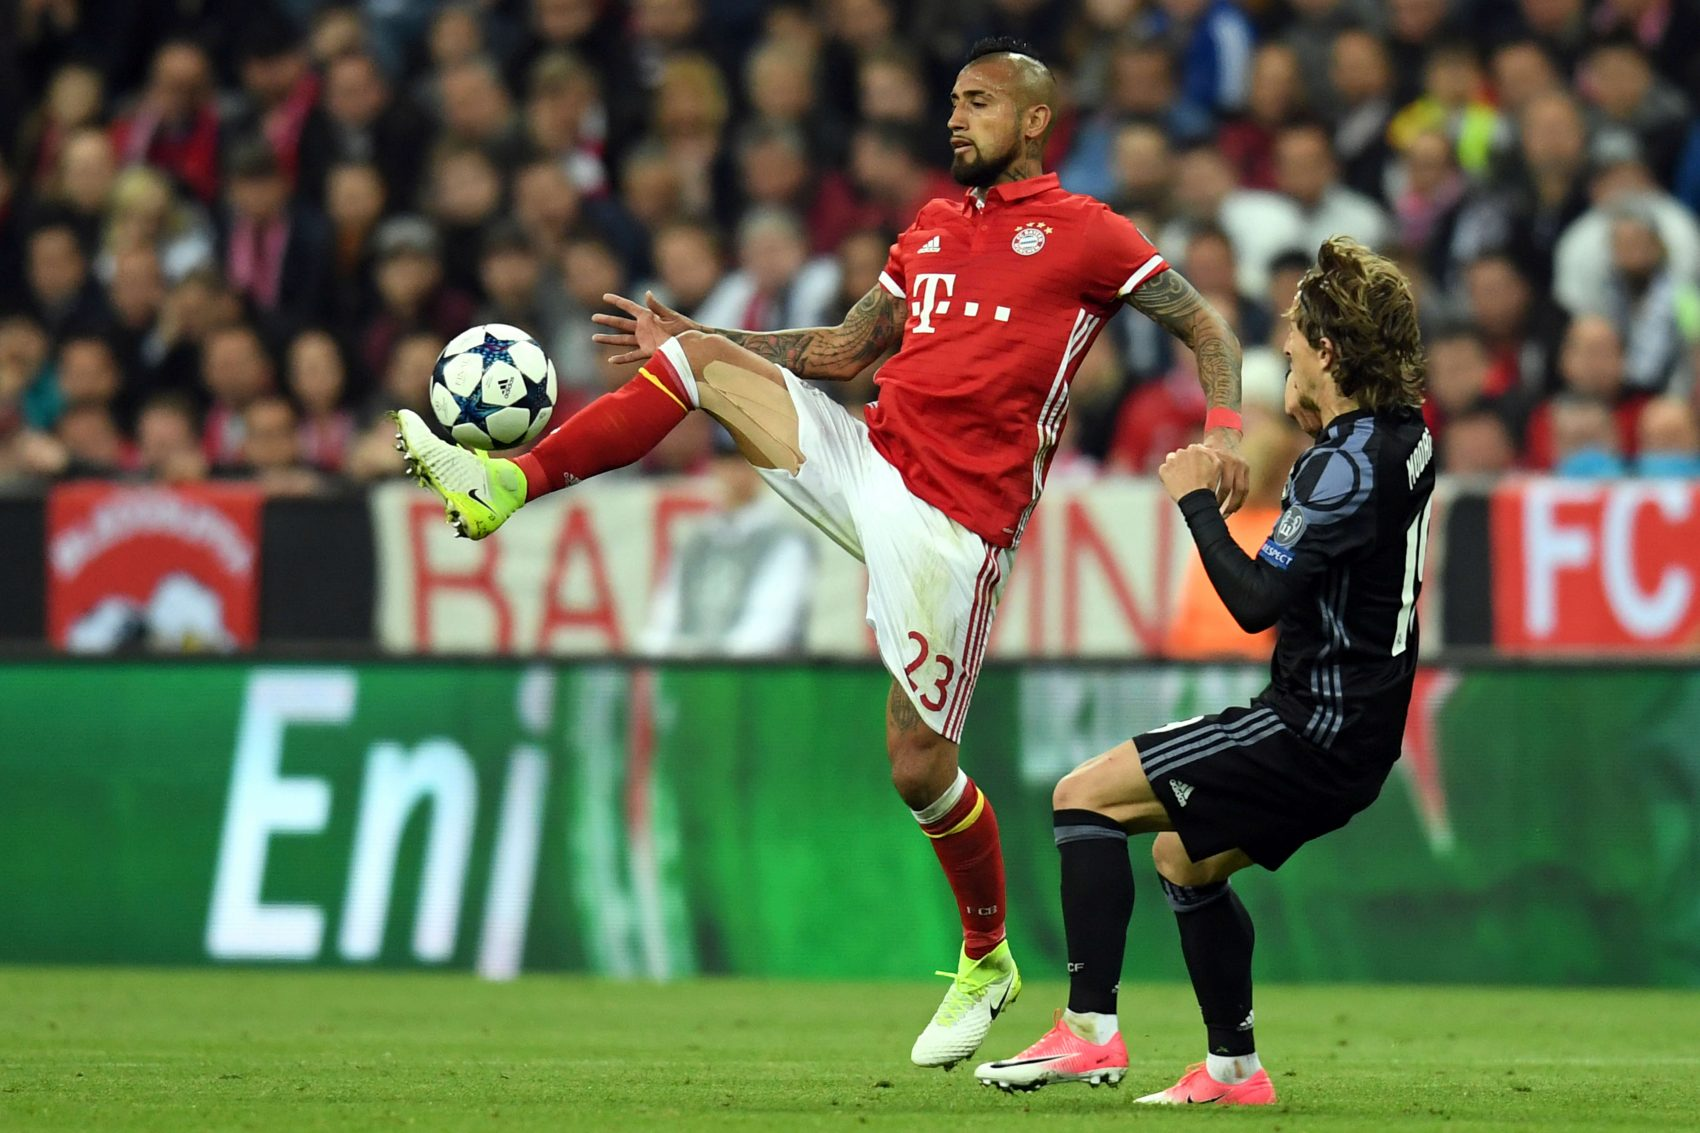 Bayern – Real, Post coitum